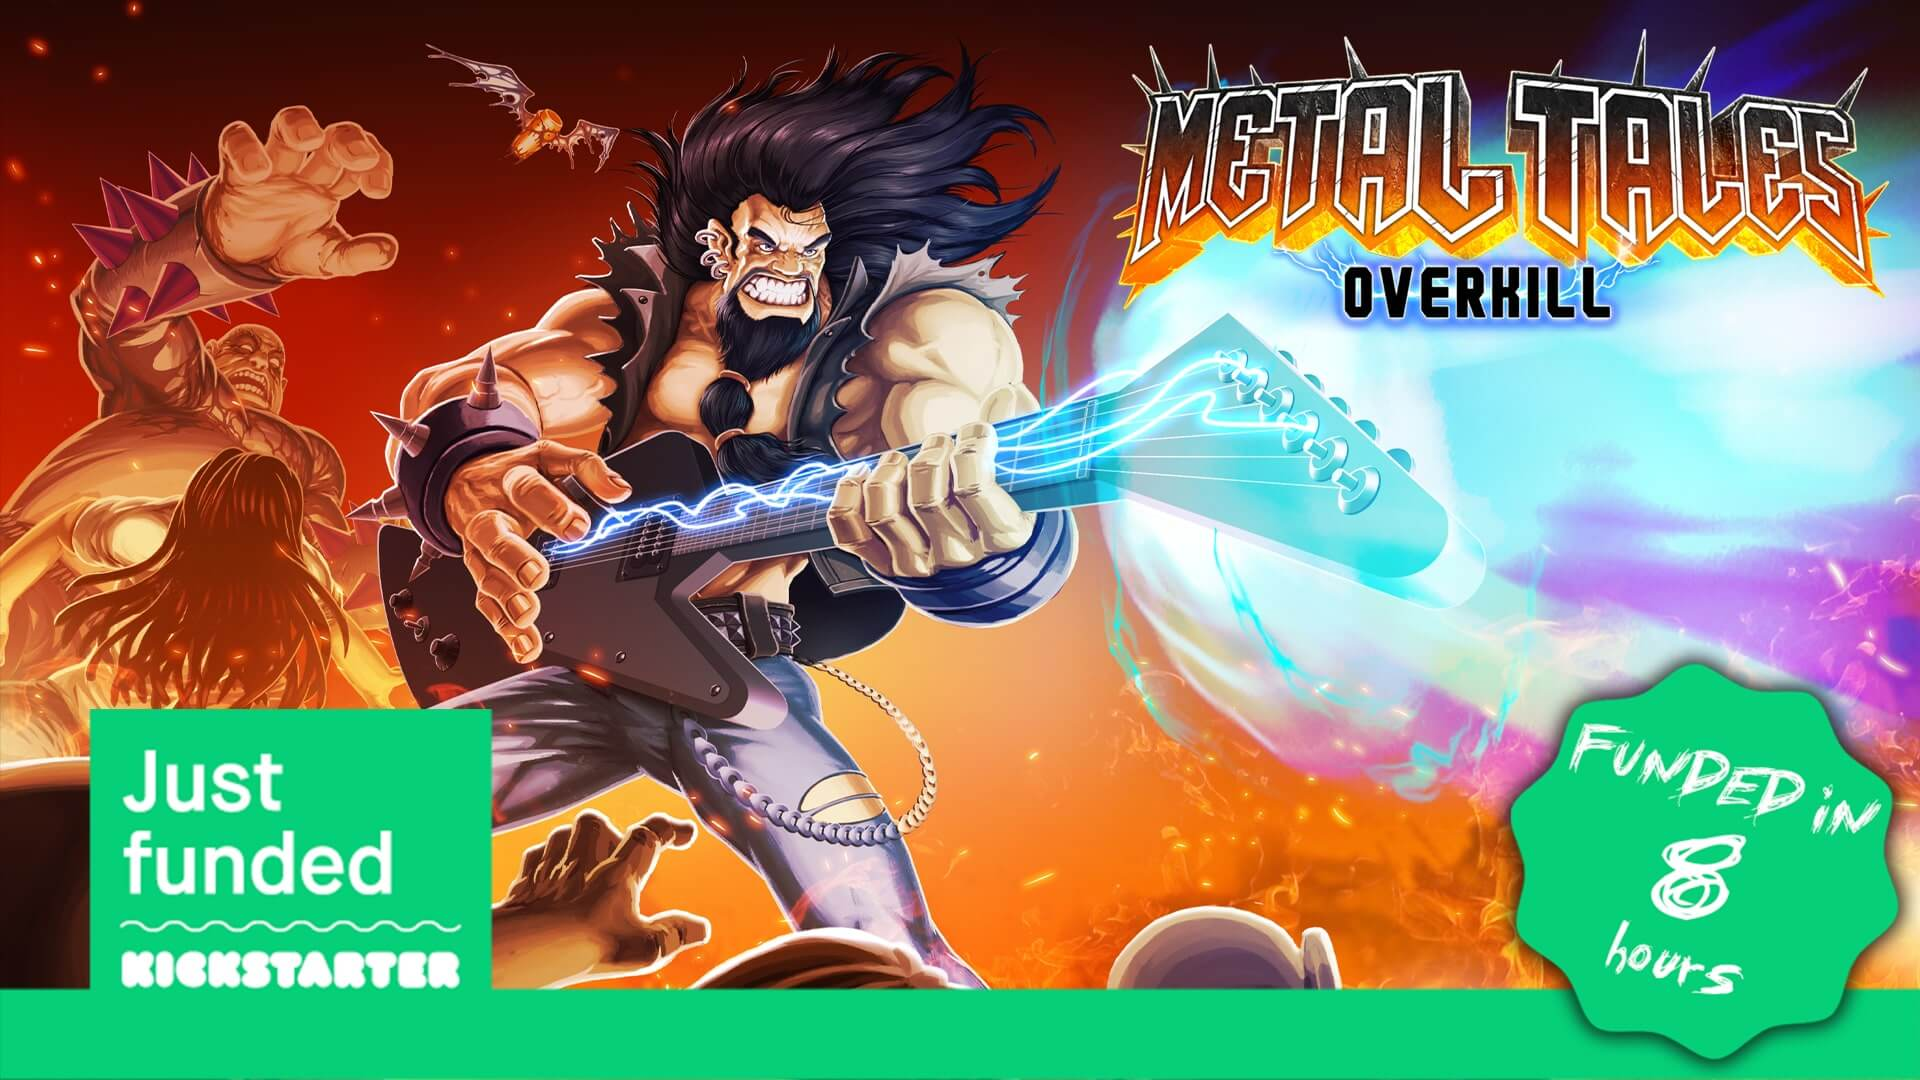 Metal Tales Overkill Funded in Under 8 Hours